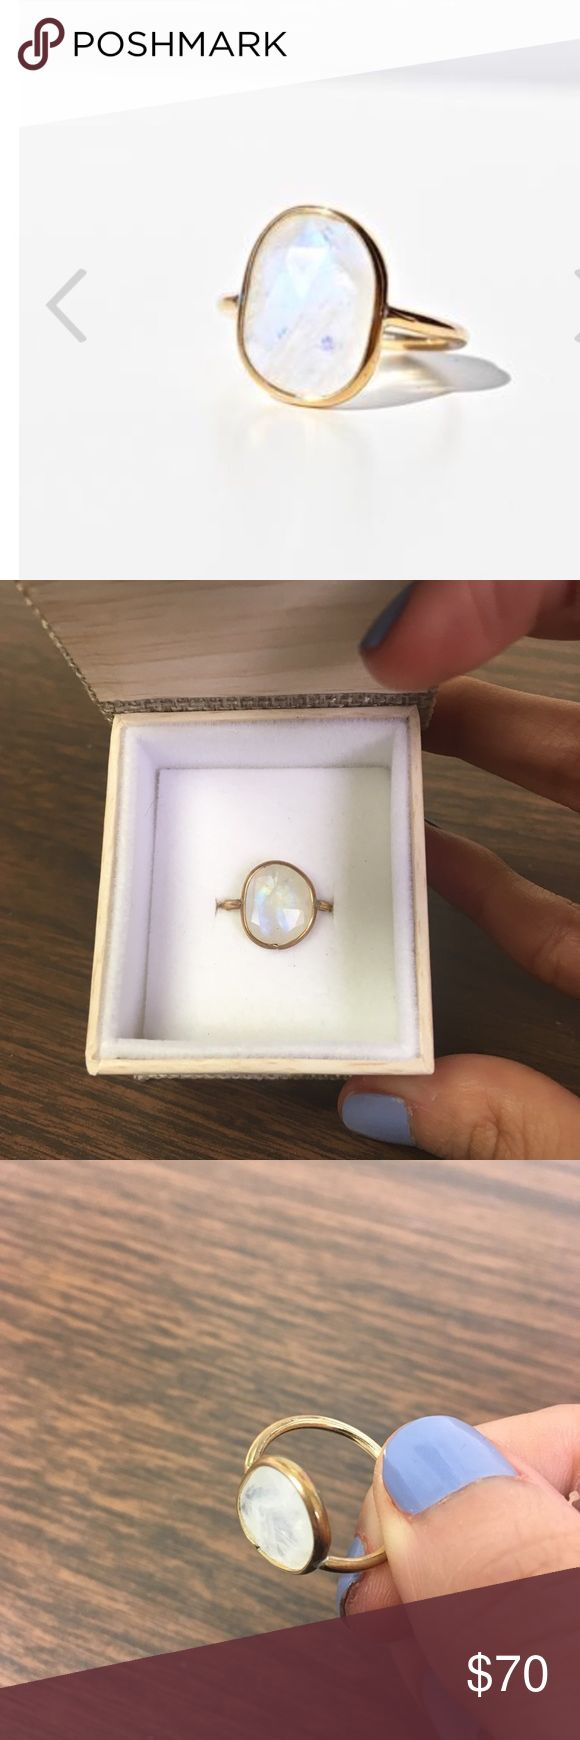 Lili Claspe moonstone ring Selling cheaper elsewhere. This is authentic Lili Claspe, it's a size 5, true to size. I have lots of LC jewelry and this has been the only gold item that I've seen the gold discolor and come off. Nothing major, but that's why I'm selling—check the pics there's some fading in the color and one small spot where there looks like a bit of the gold faded off. The stone itself is beautiful. lili claspe Jewelry Rings